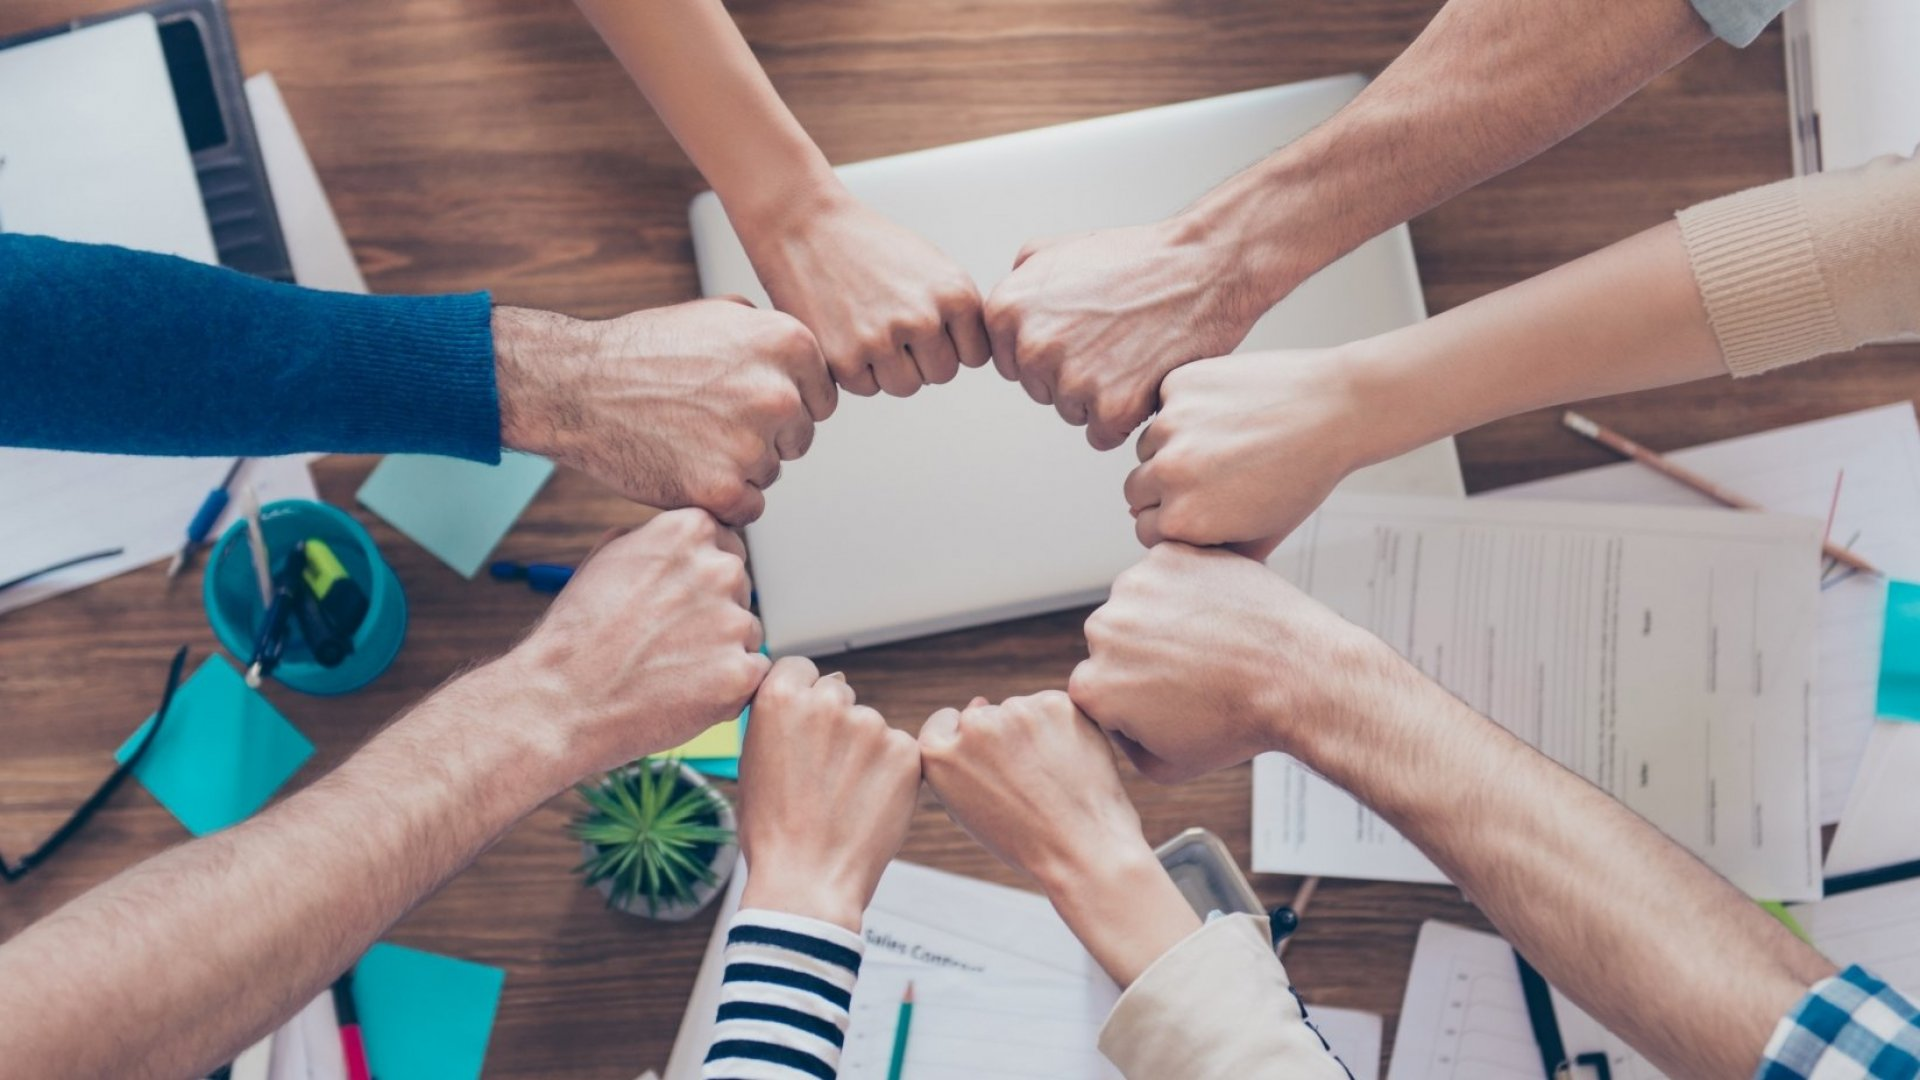 5 Action Steps for Leading Your Team Through Crisis